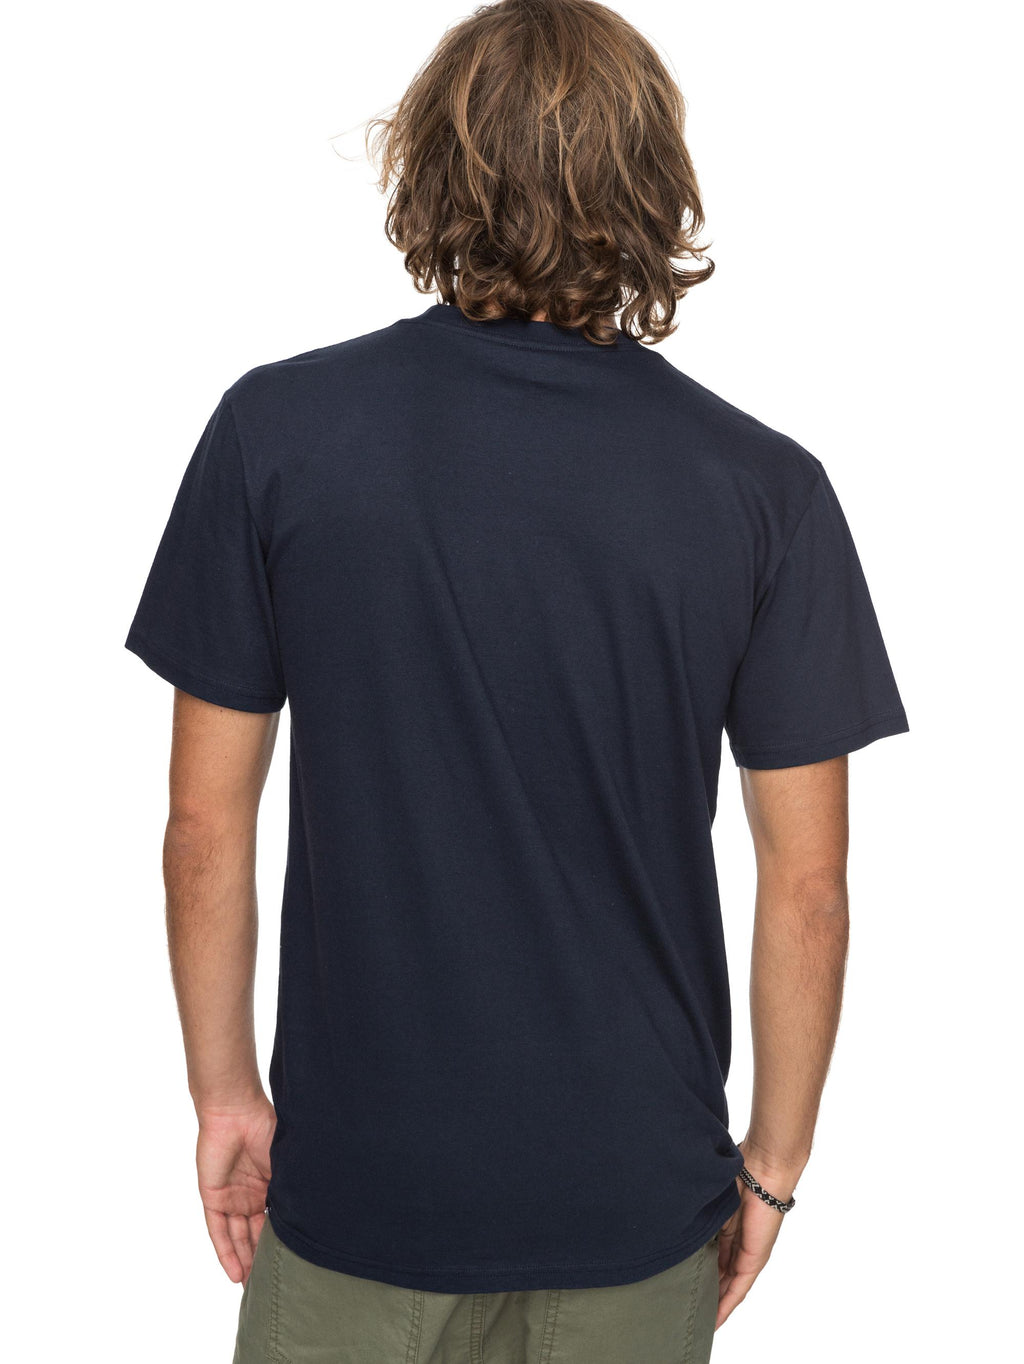 Quiksilver Waves Ahead Tee - Men's